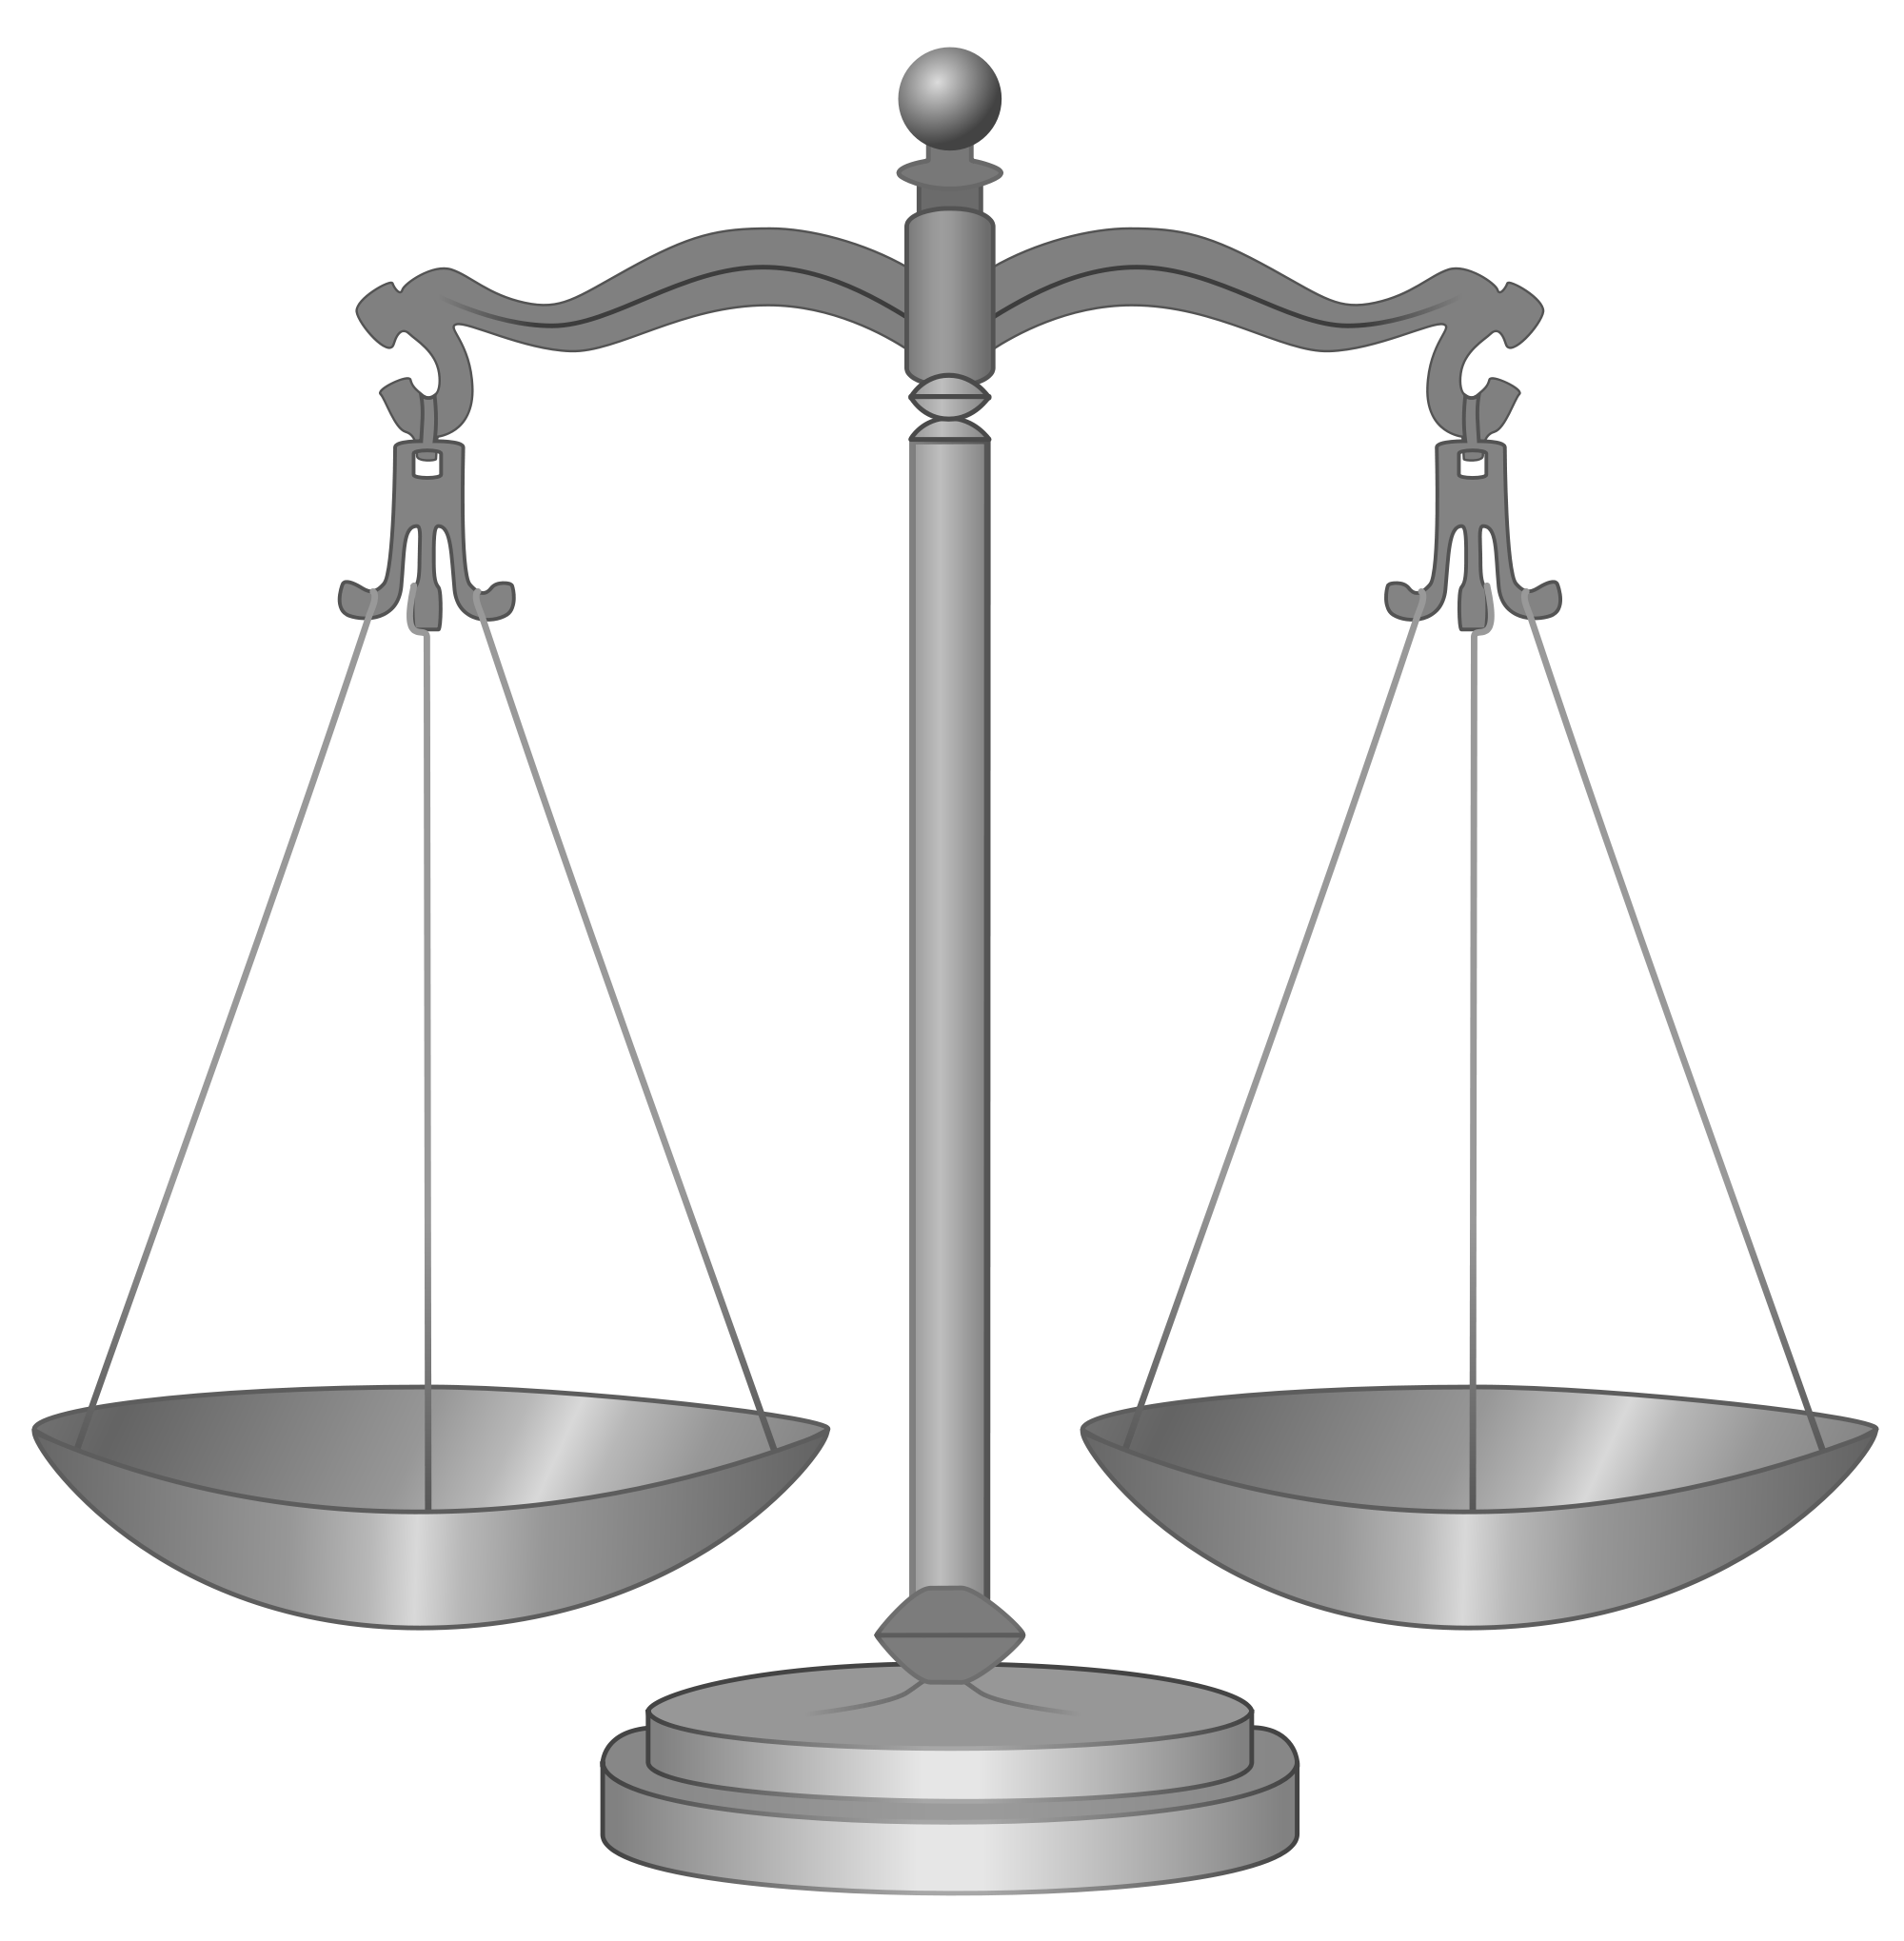 Transparent scales court. Law scale png images